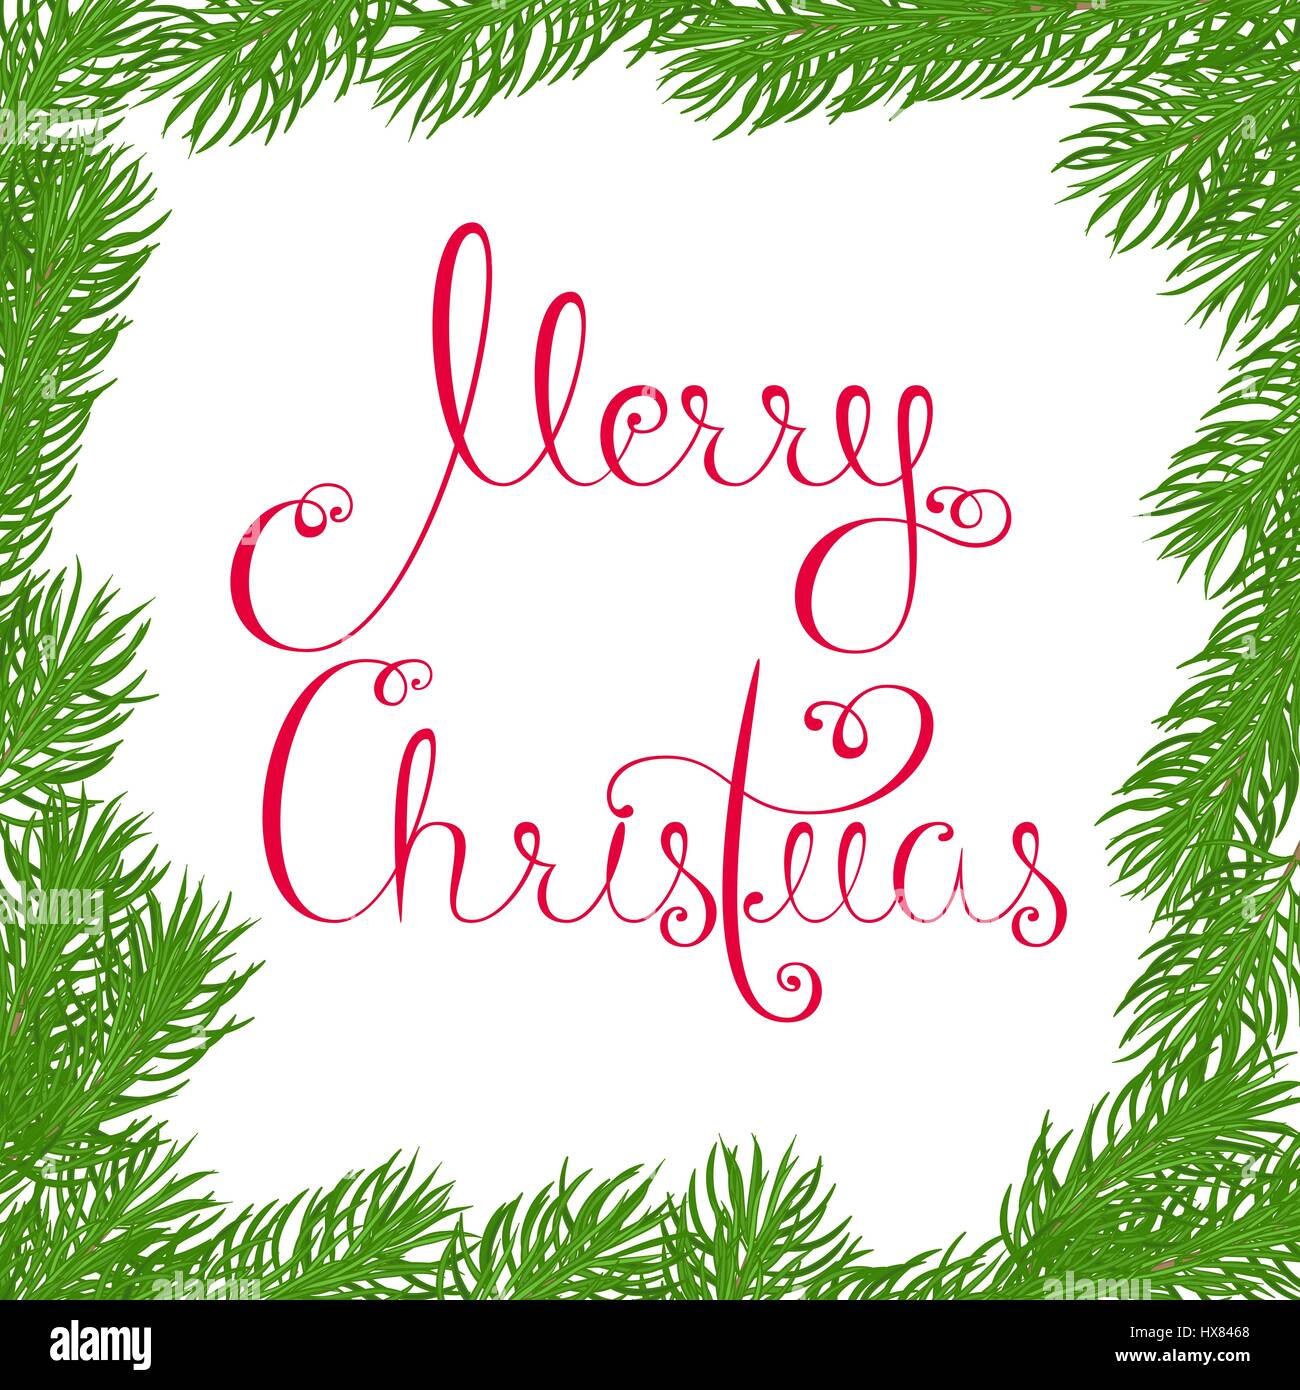 Festive square frame made of fir branches with Merry Christmas greetings written with beautiful calligraphy in red - Stock Image